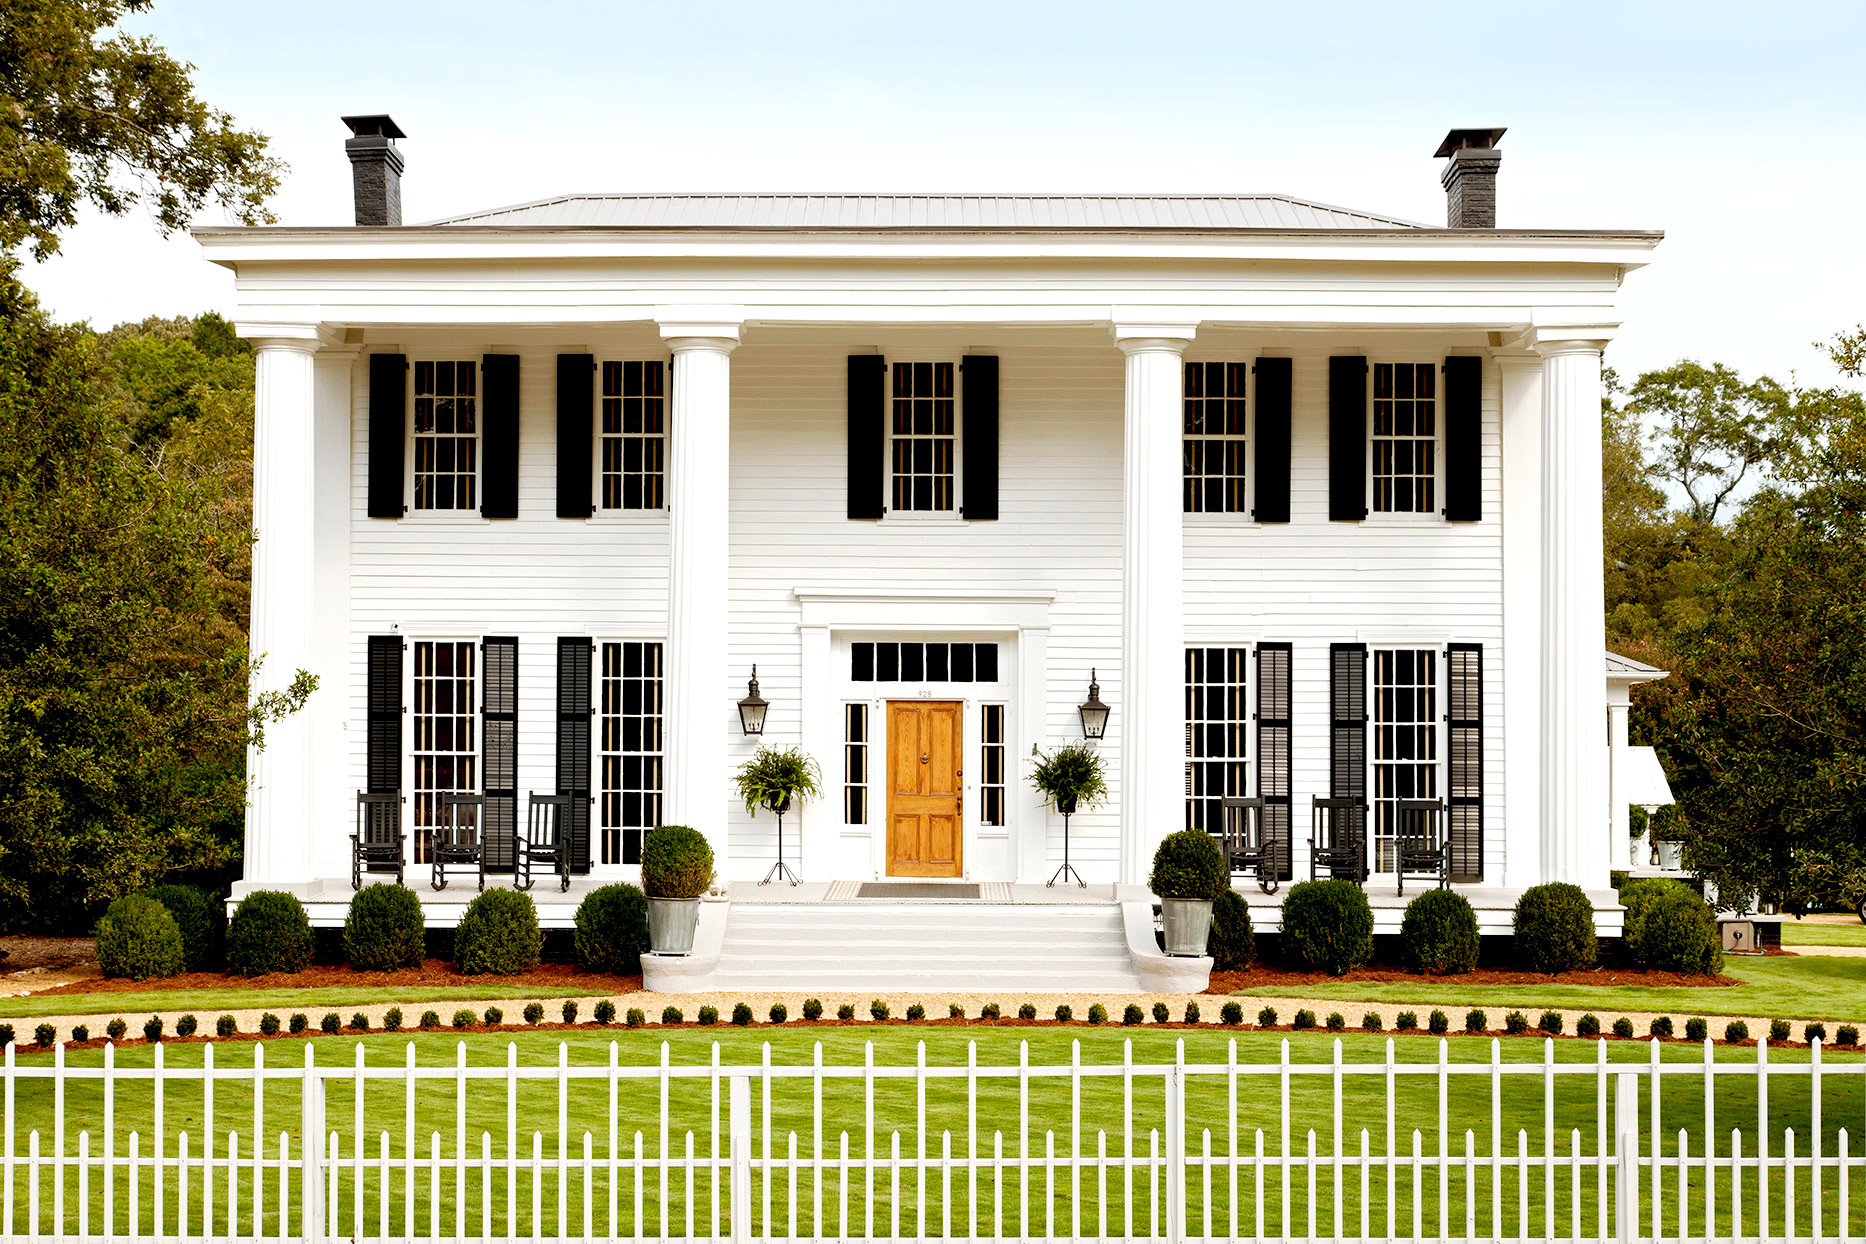 White colonial home with large columns and steps